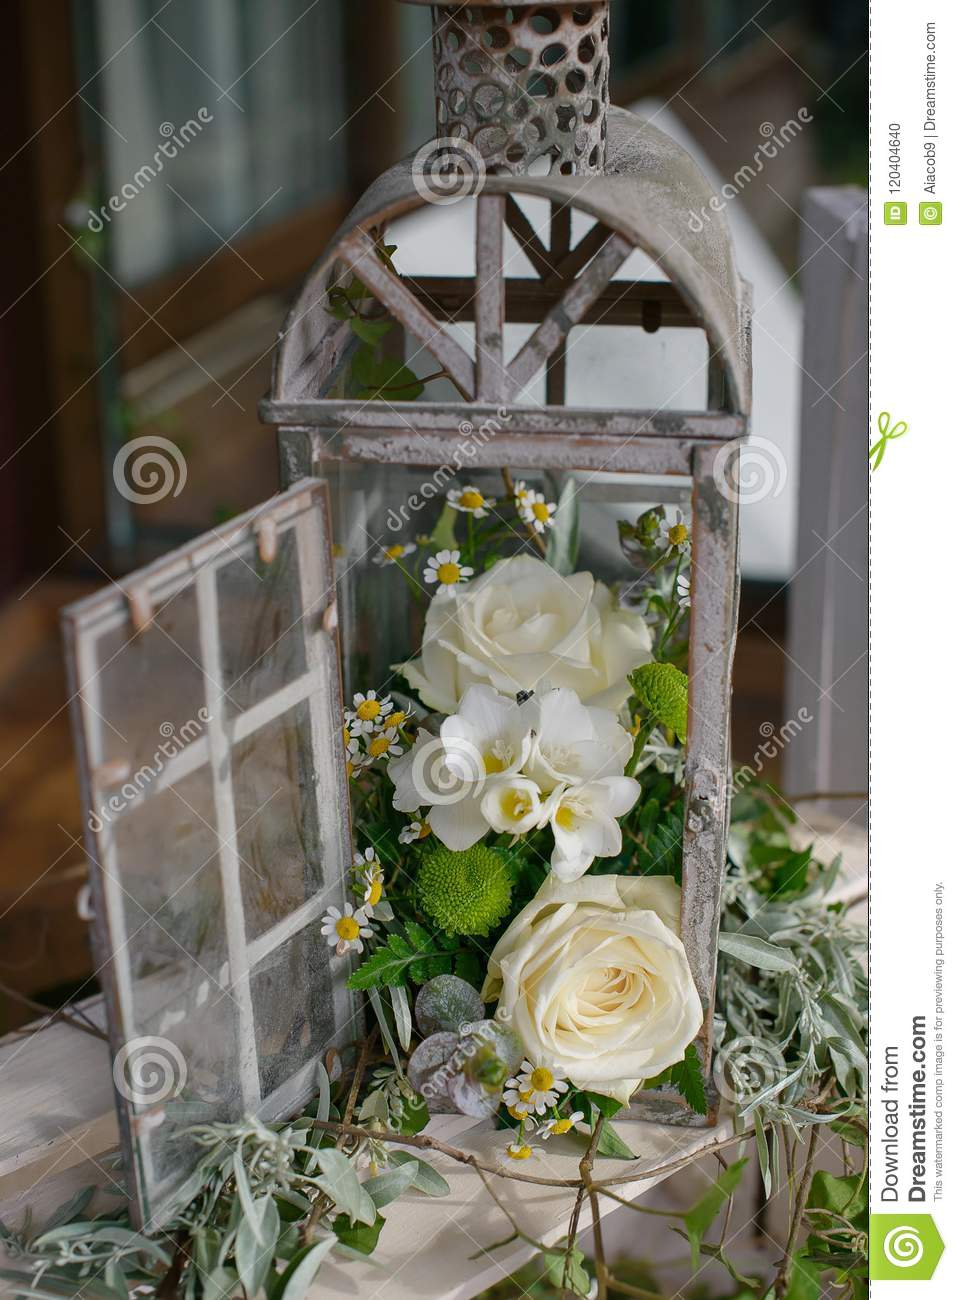 Shabby Chic Wedding Decor With Repurposed Lantern Cage Stock Photo